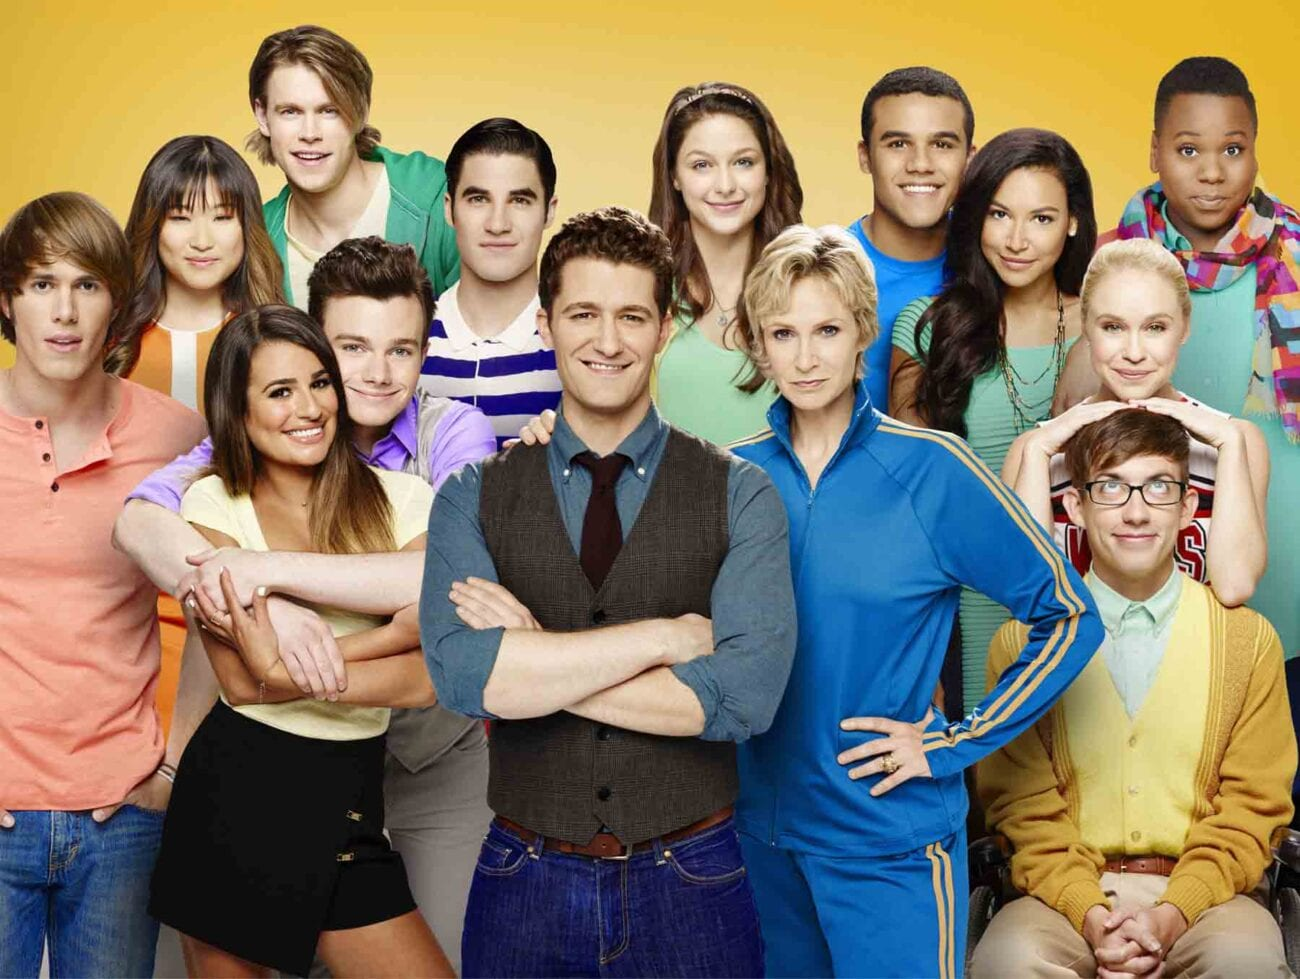 Even years later, Glee's legacy lives on in the fans that have remained. Of course, Gleeks have some awesome memes as well. Here are the best Gleek memes.